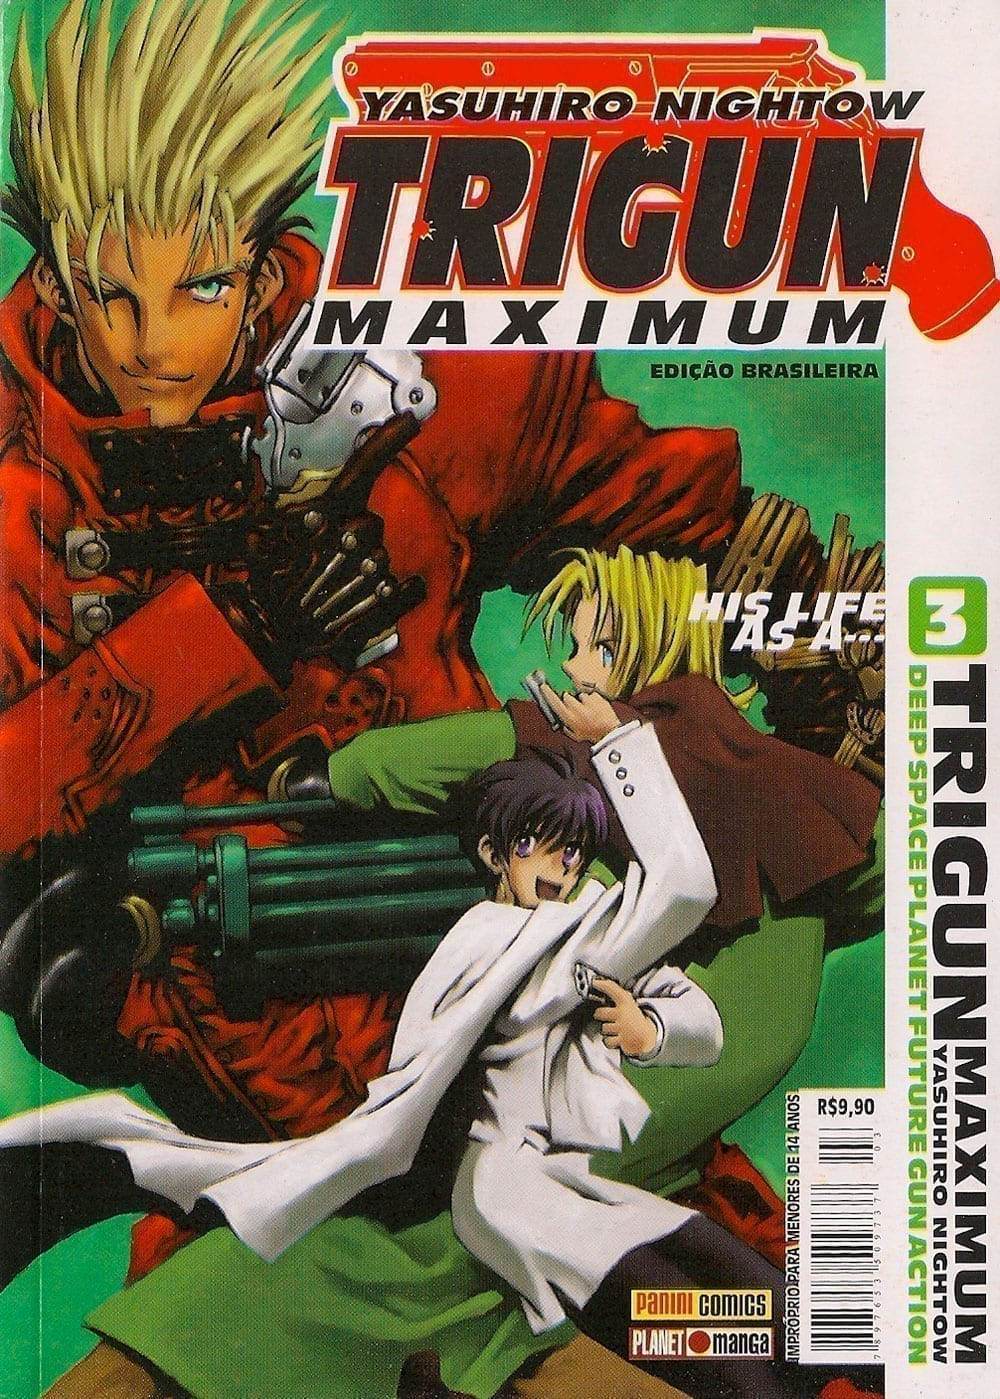 Capa: Trigun Maximum 3